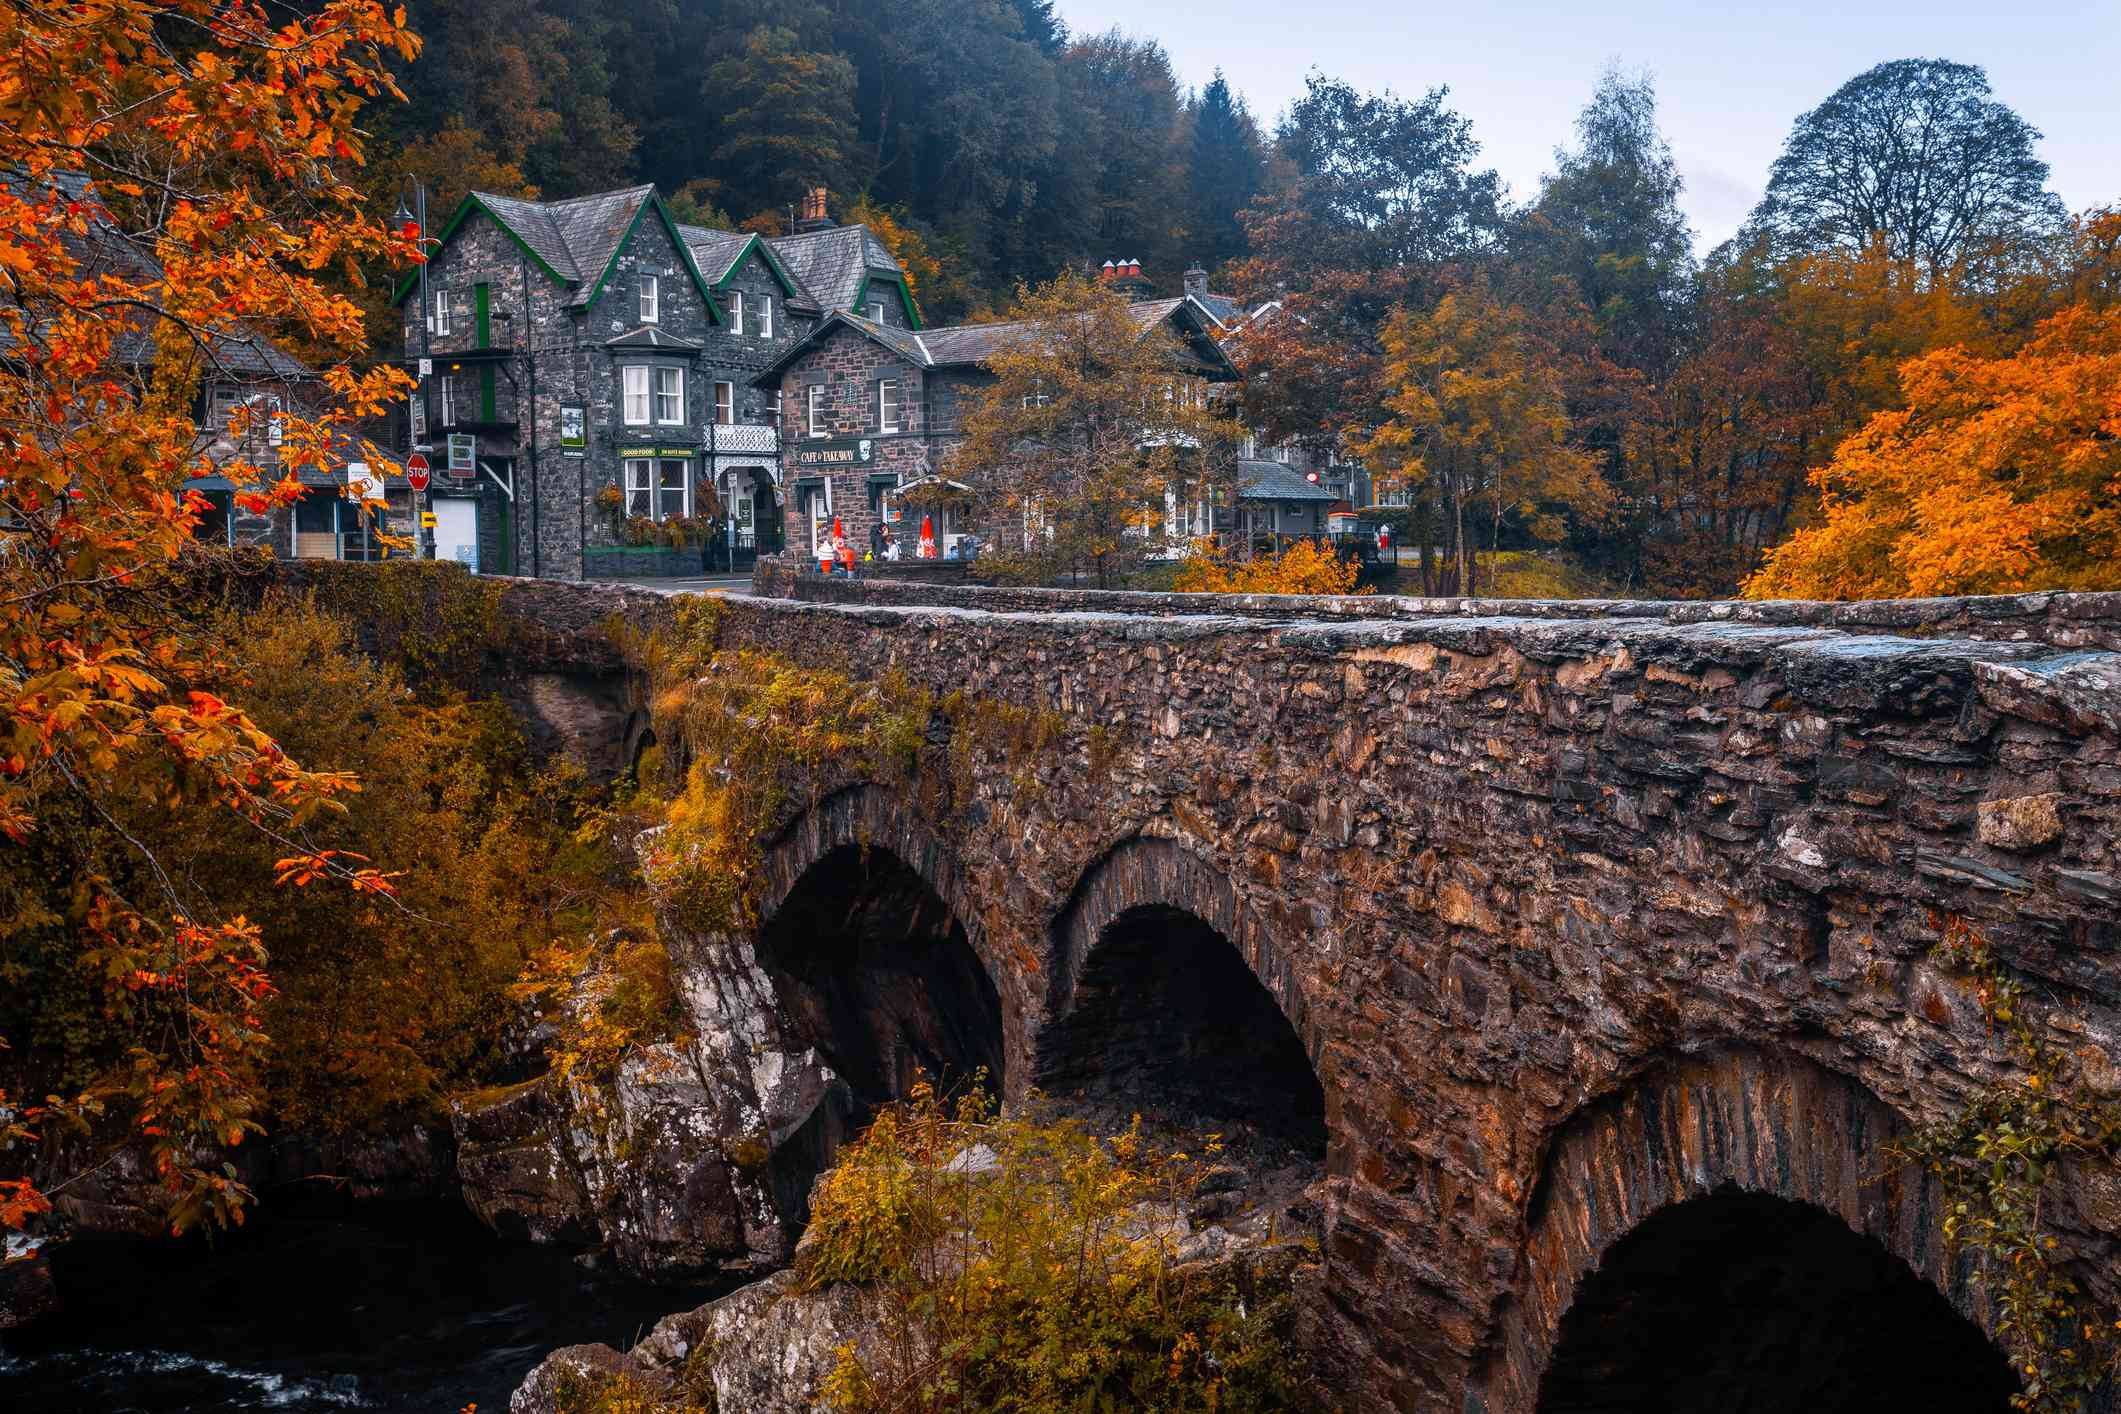 an old stone bridge surrounded by bright orange trees and two cottages with green and gold trees in the background in Snowdonia, Wales